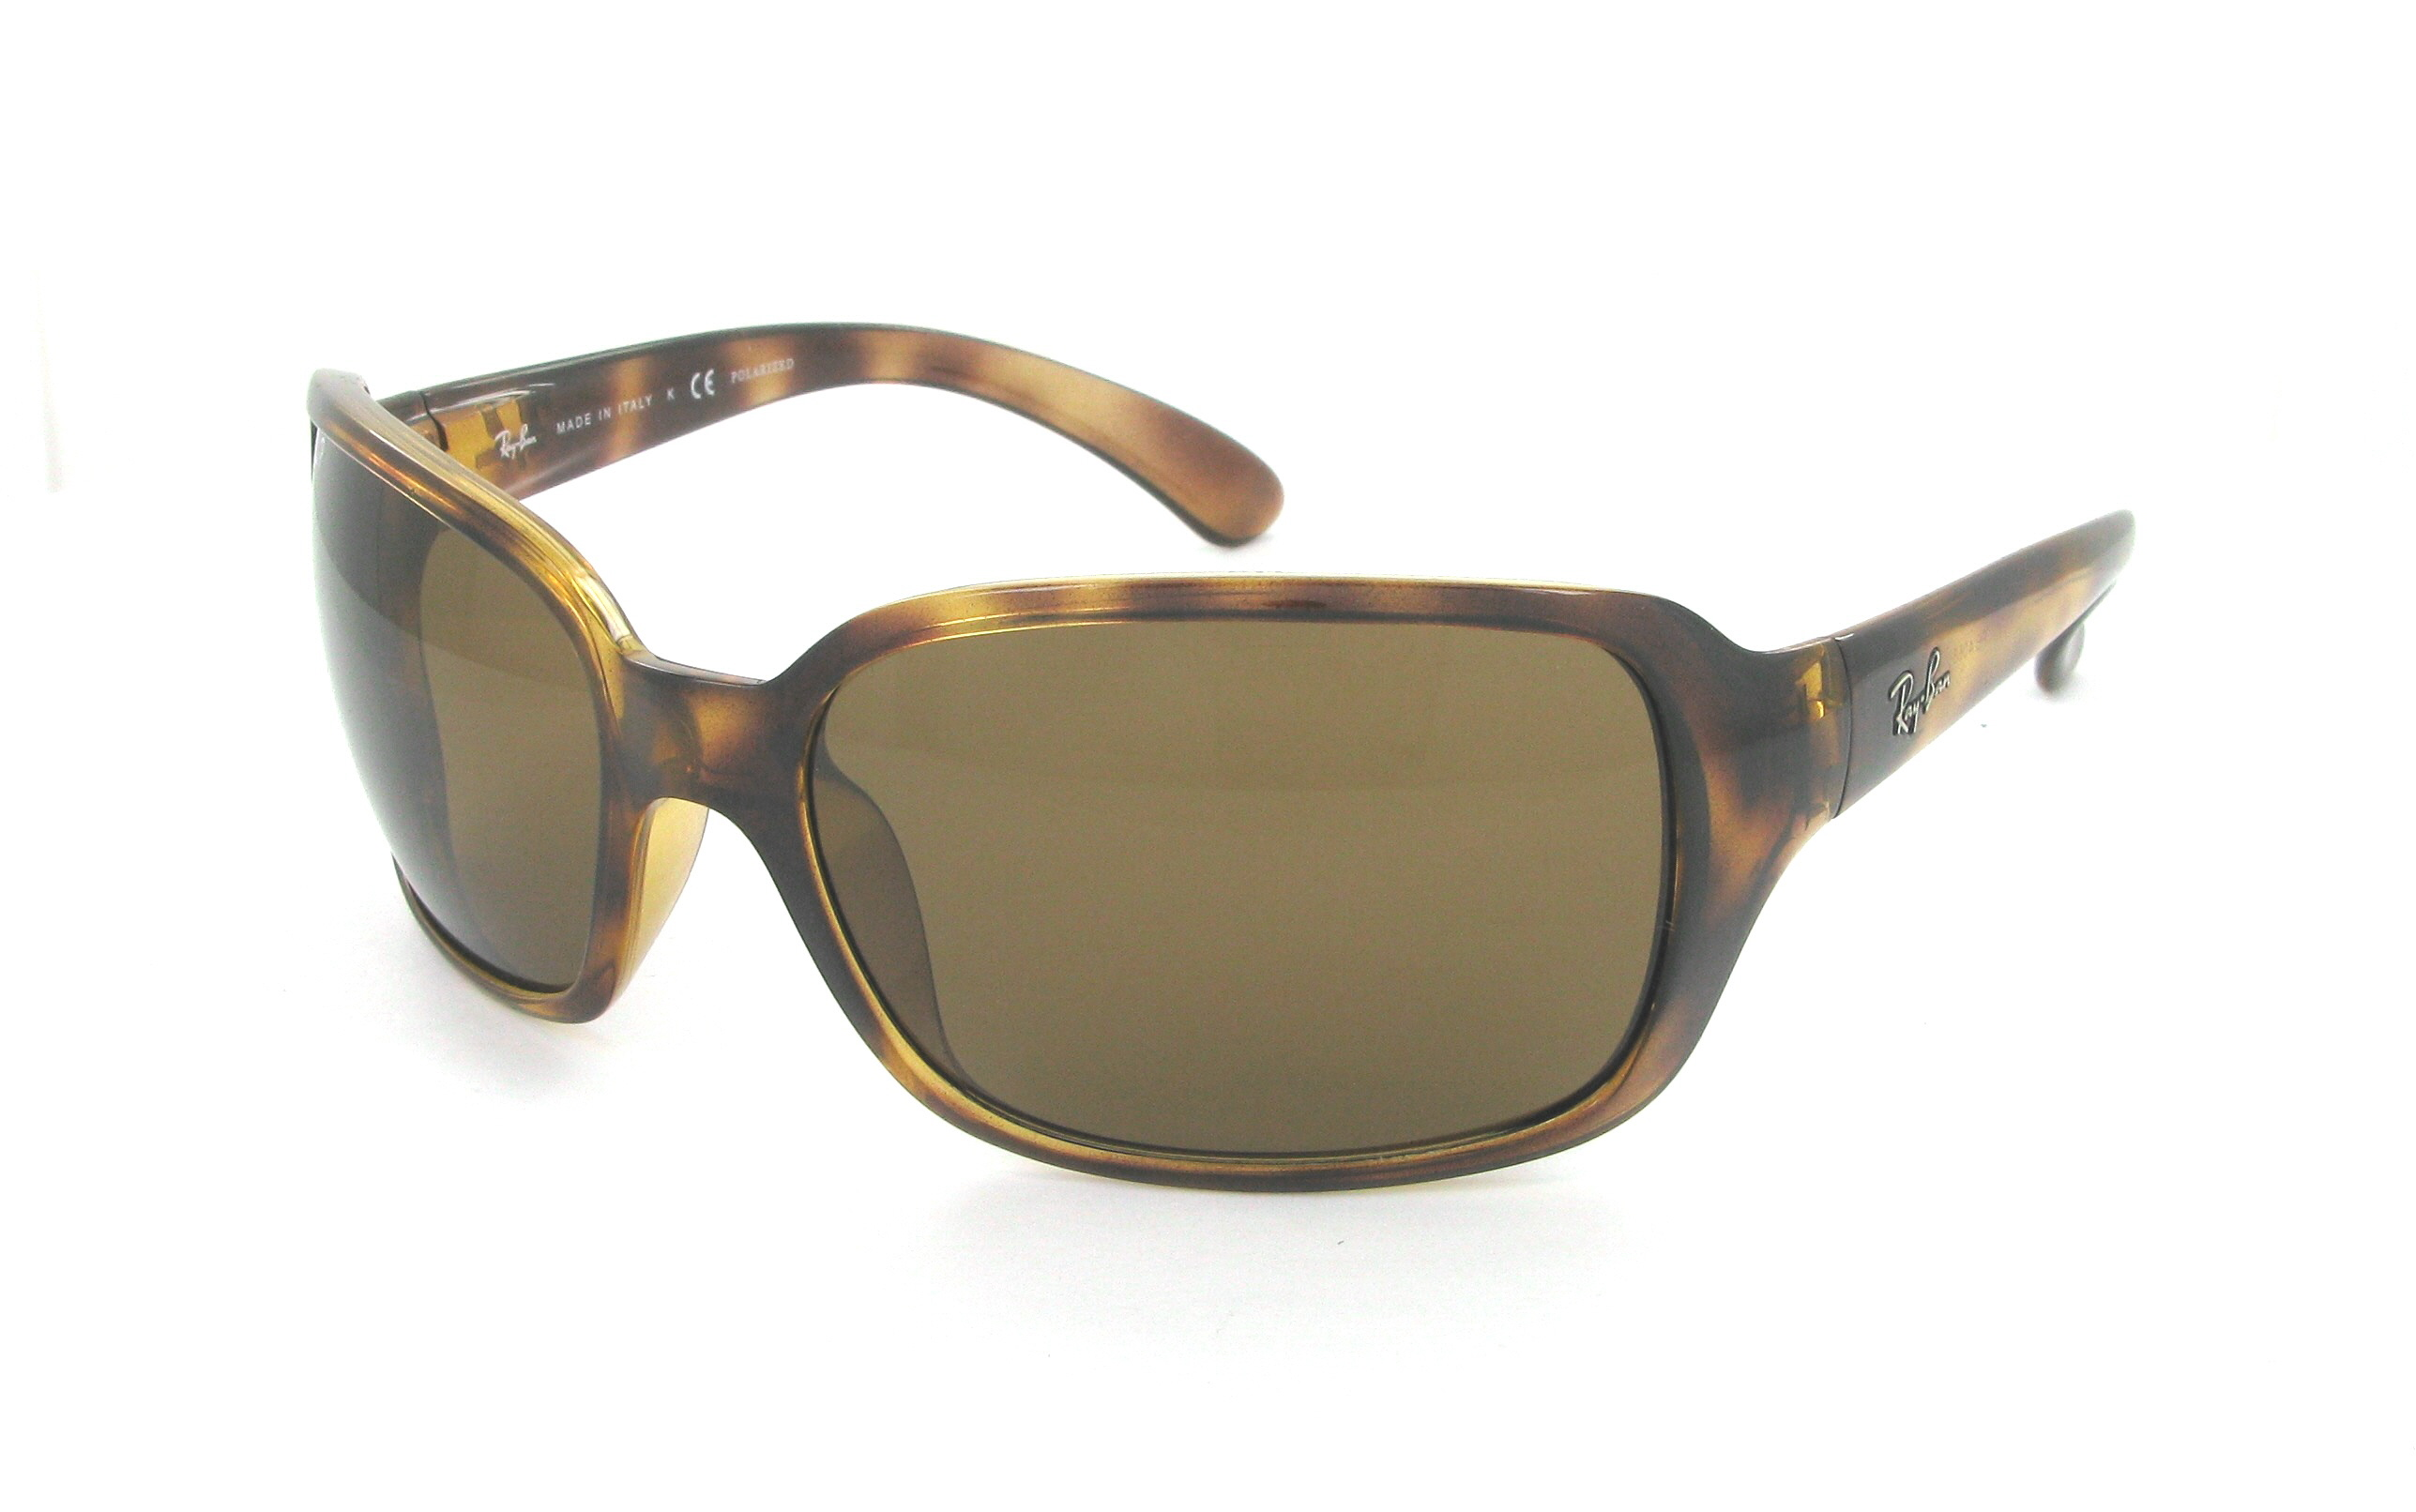 nouvelle collection ray ban 2014